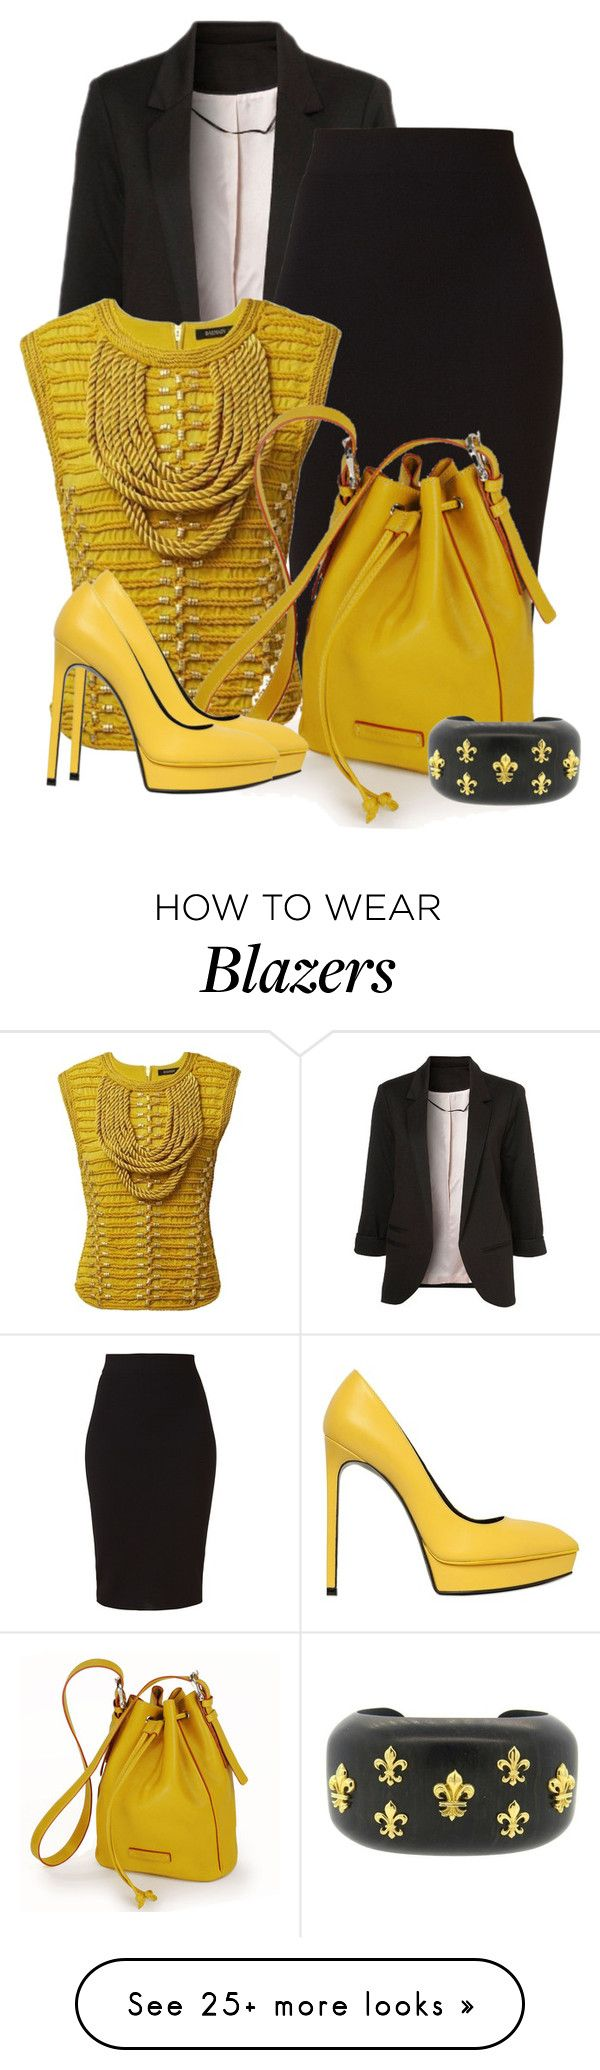 """Easy and Real"" by ljbminime on Polyvore featuring WithChic, Winser London, Balmain, Yves Saint Laurent, Trianon, women's clothing, women's fashion, women, female and woman"